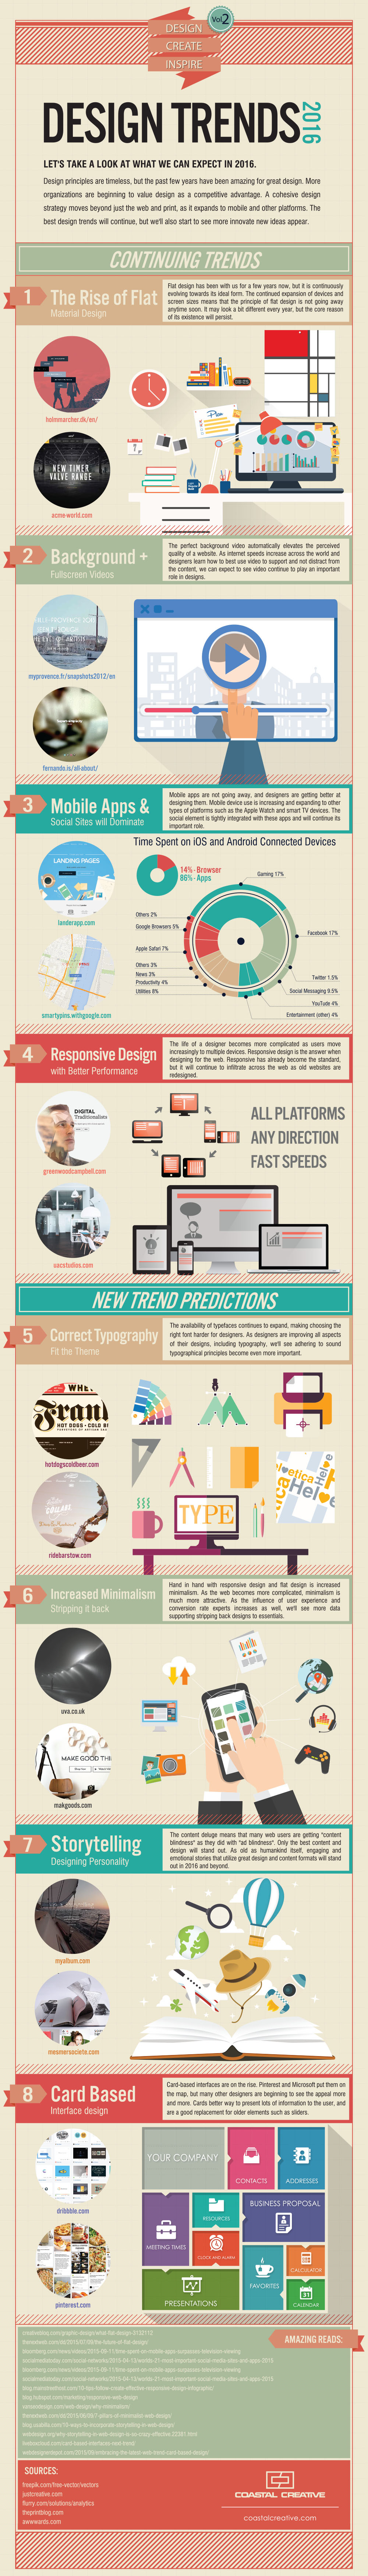 design trends 2016 infographic